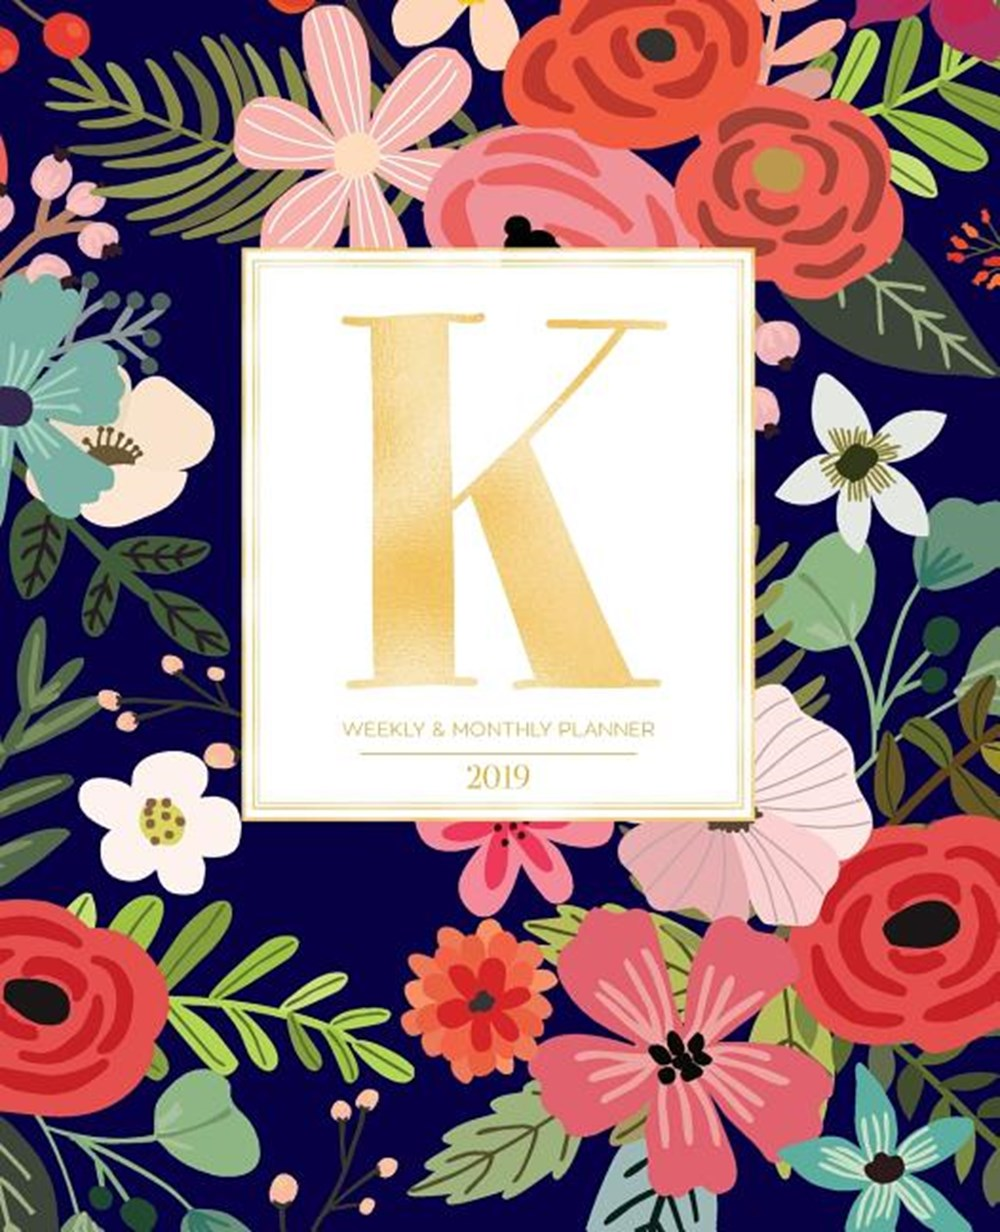 Weekly & Monthly Planner 2019 Navy Florals with Red and Colorful Flowers and Gold Monogram Letter K